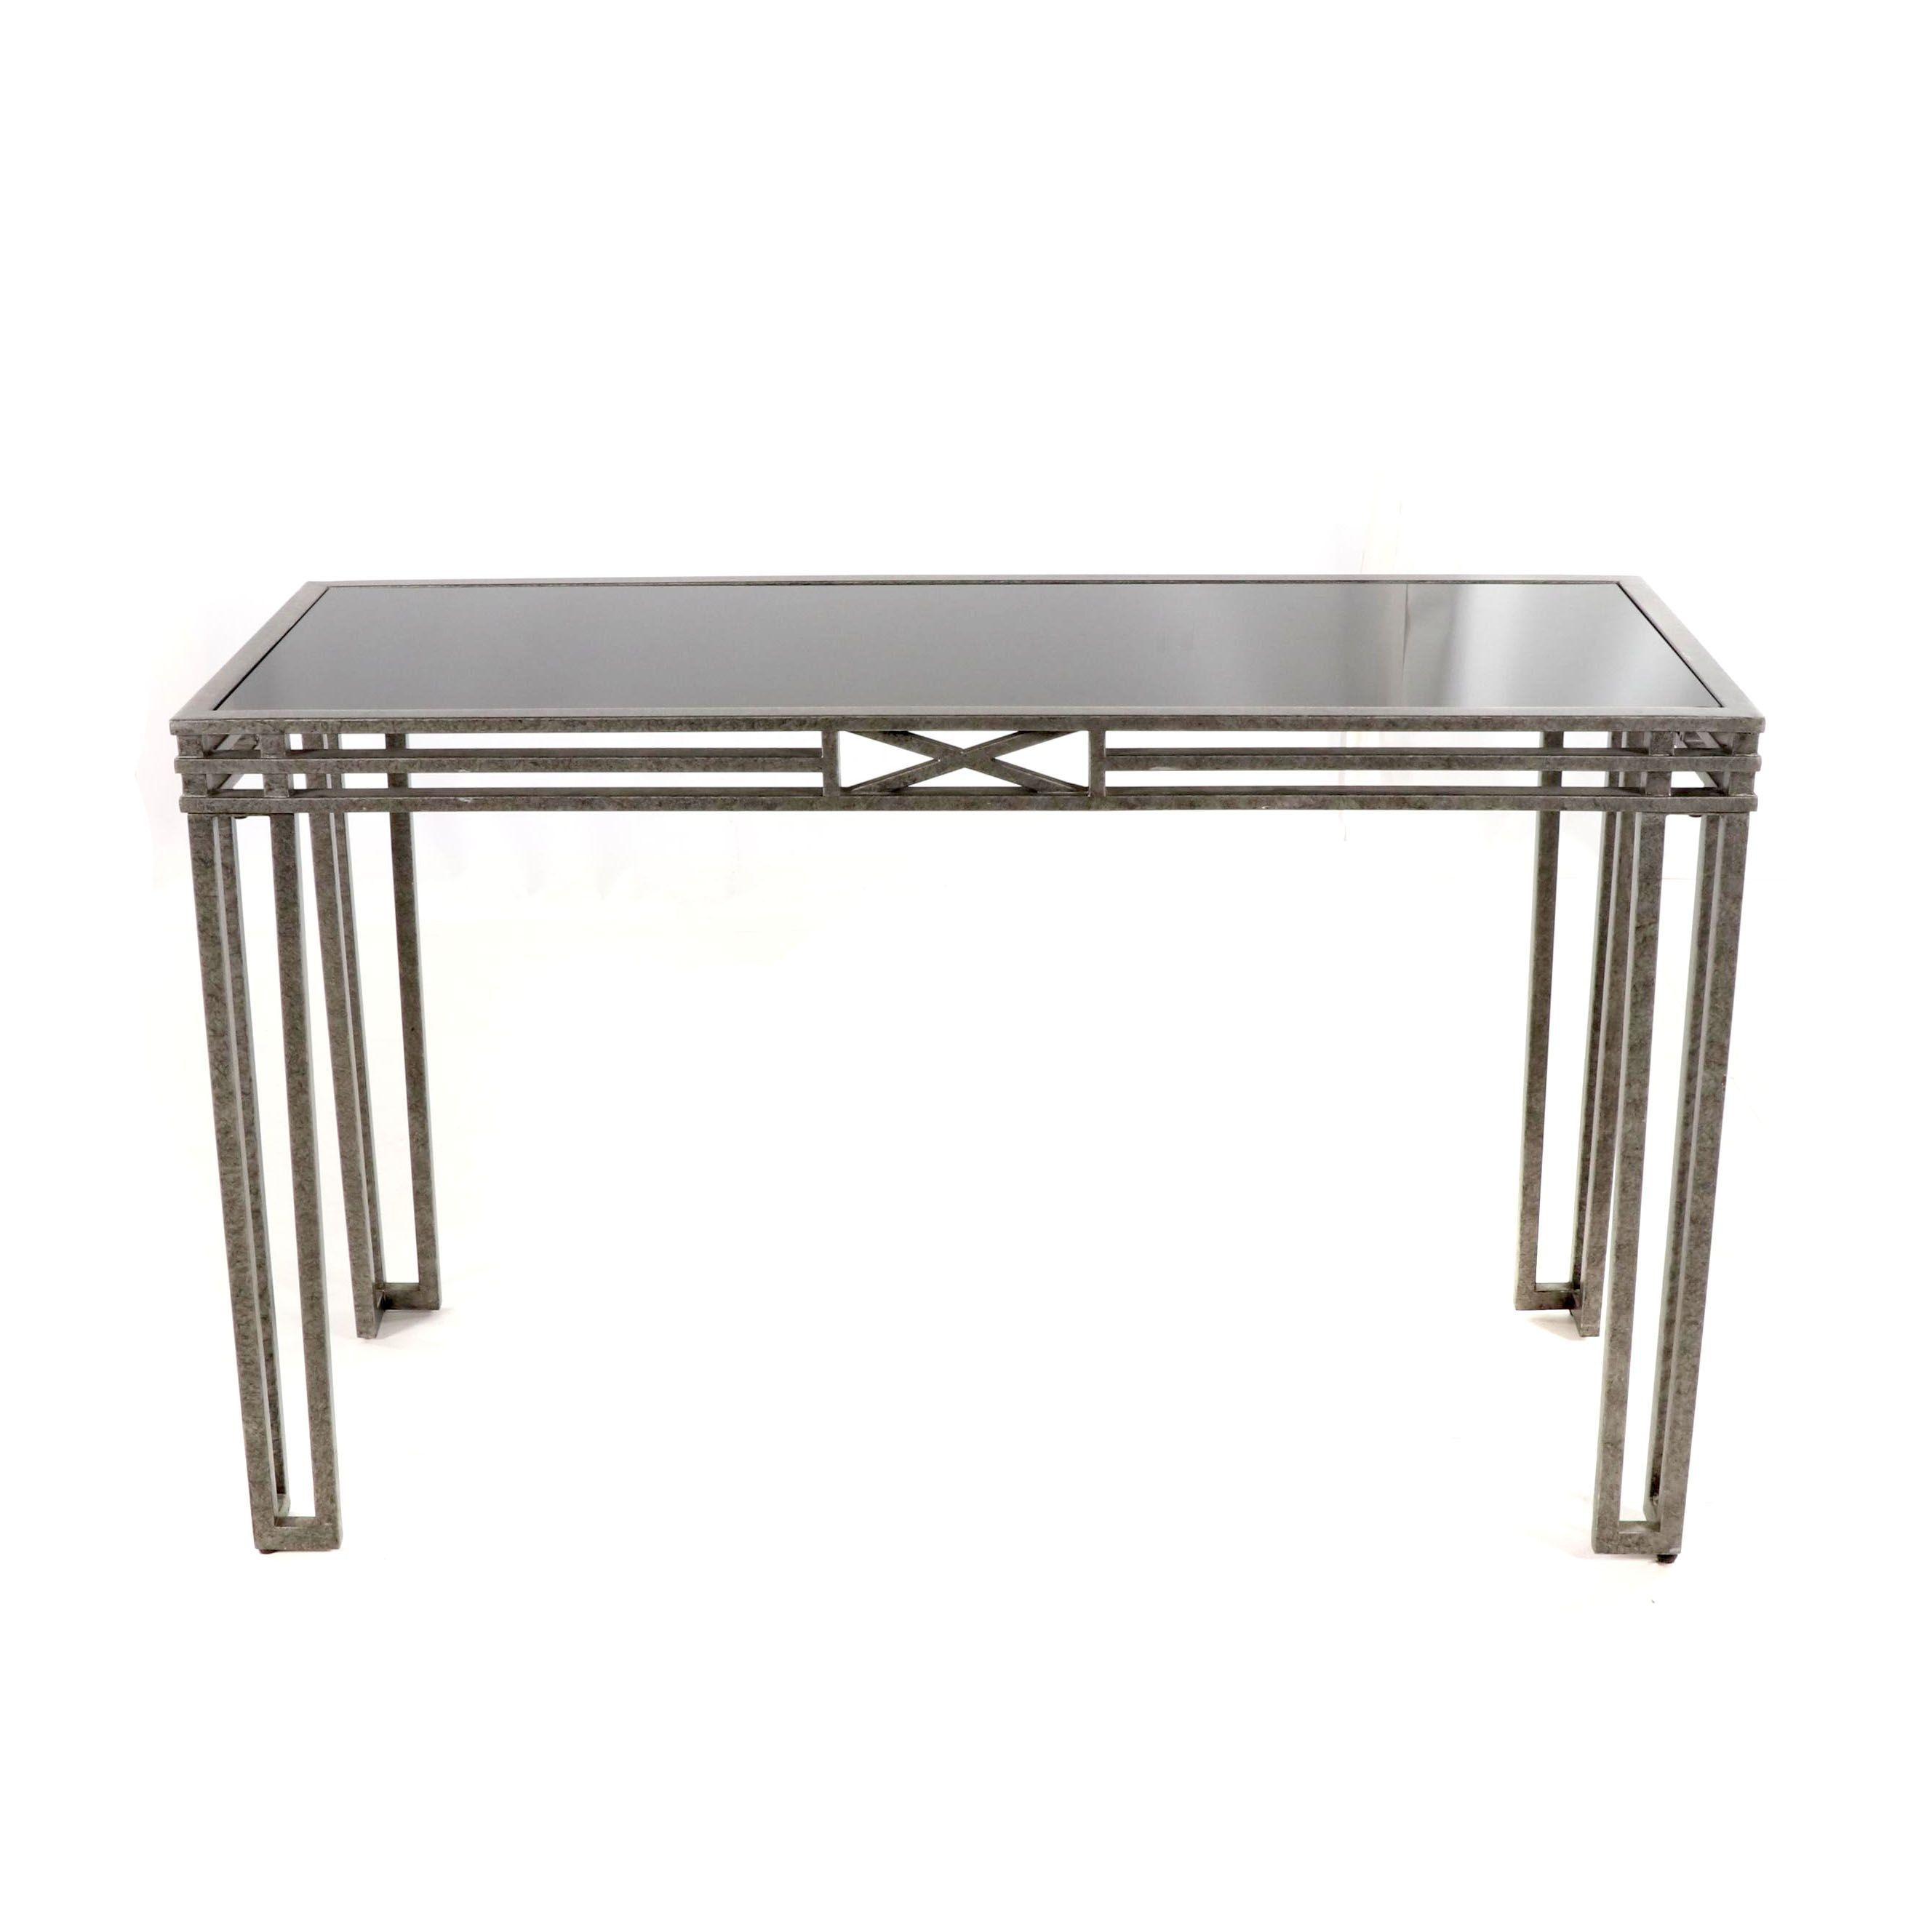 Metal and Black Glass Console Table, 21st Century